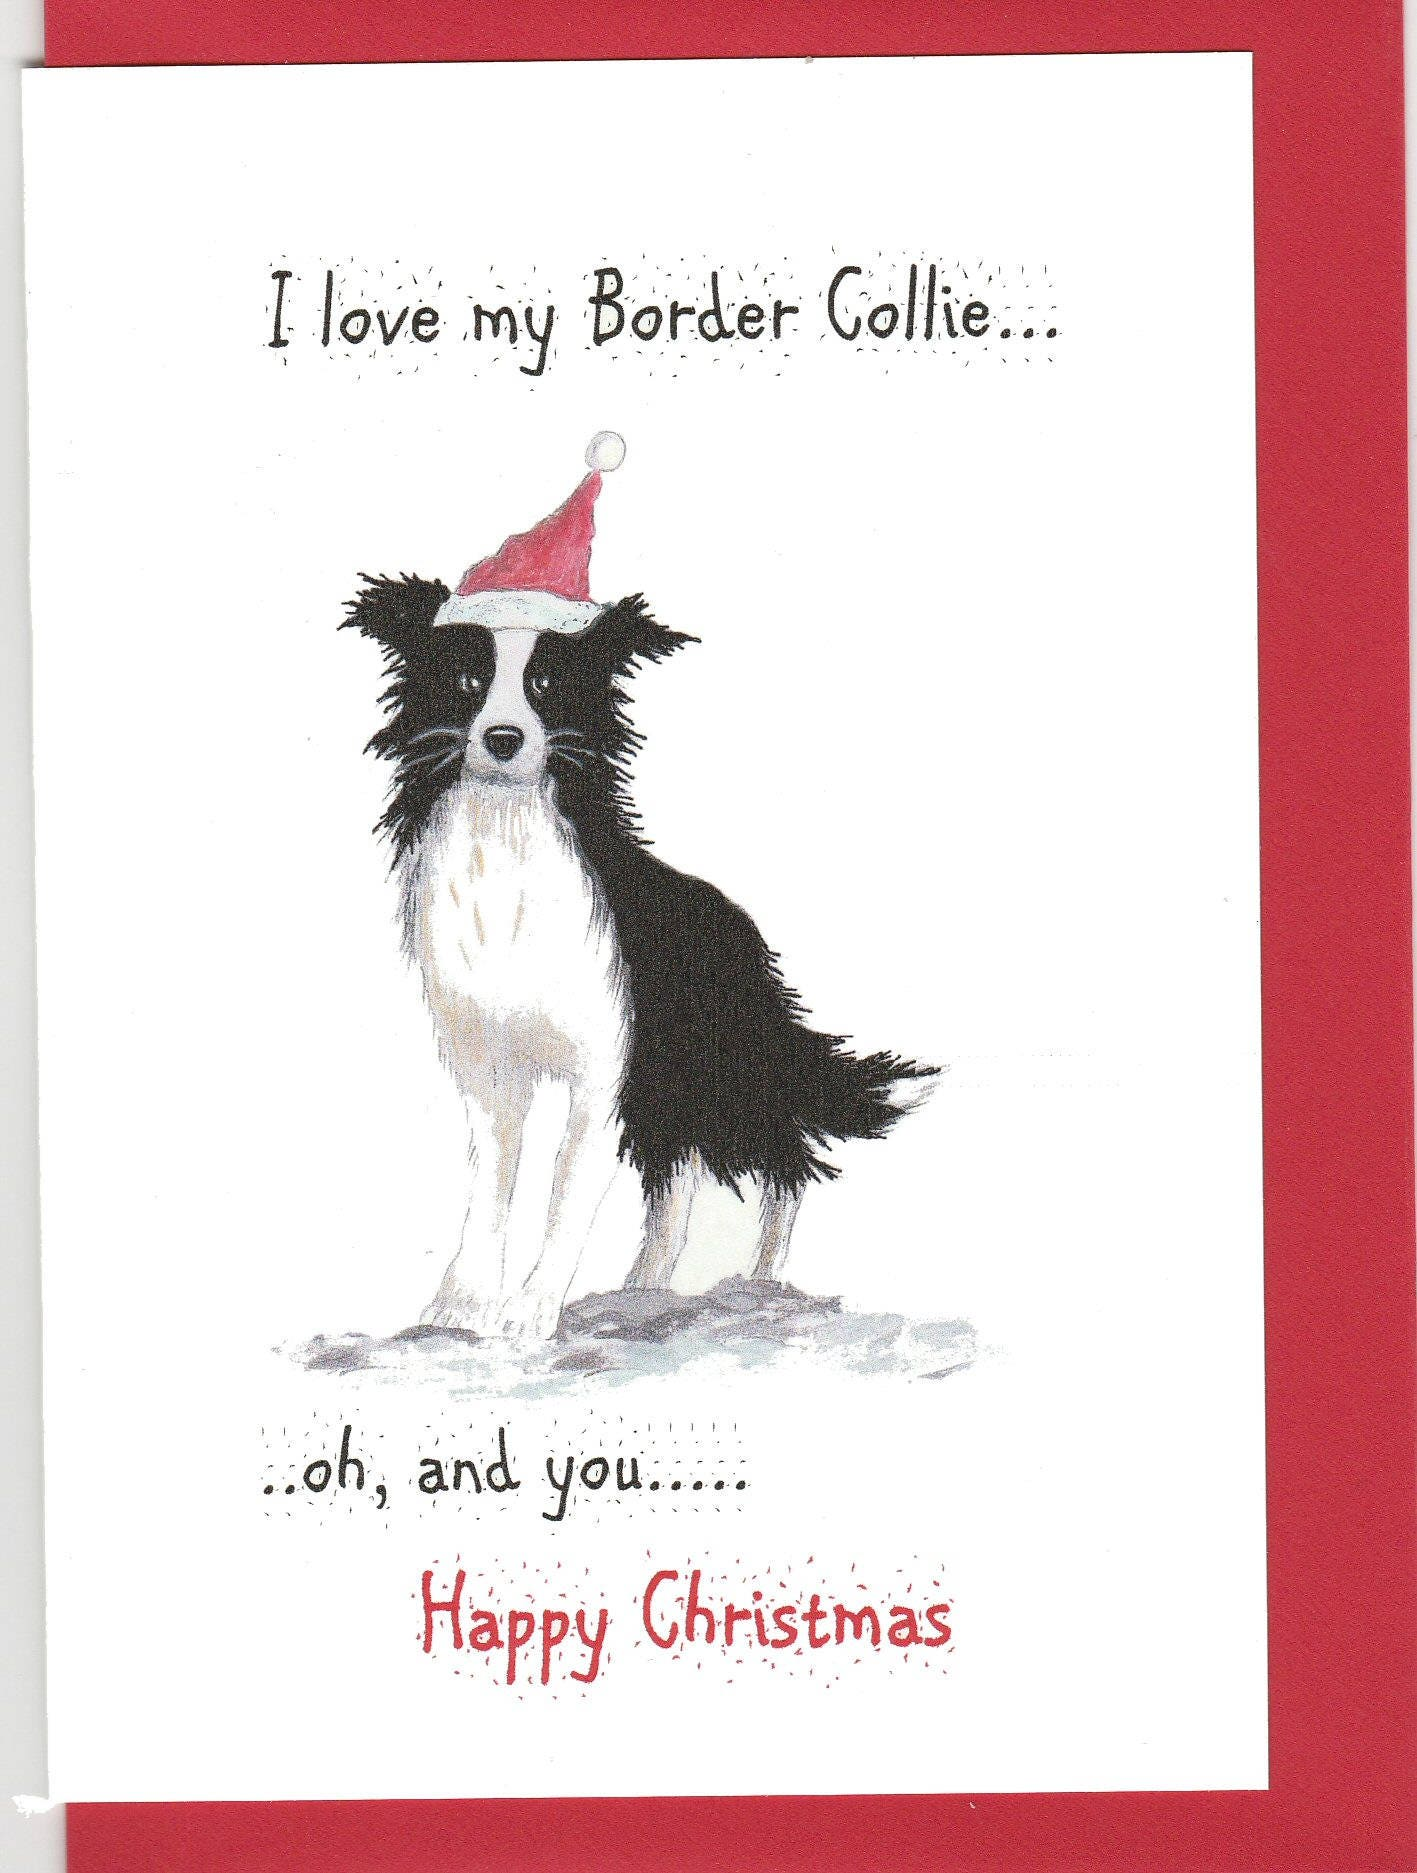 Border Collie Christmas card. Christmas card wit a border | Etsy